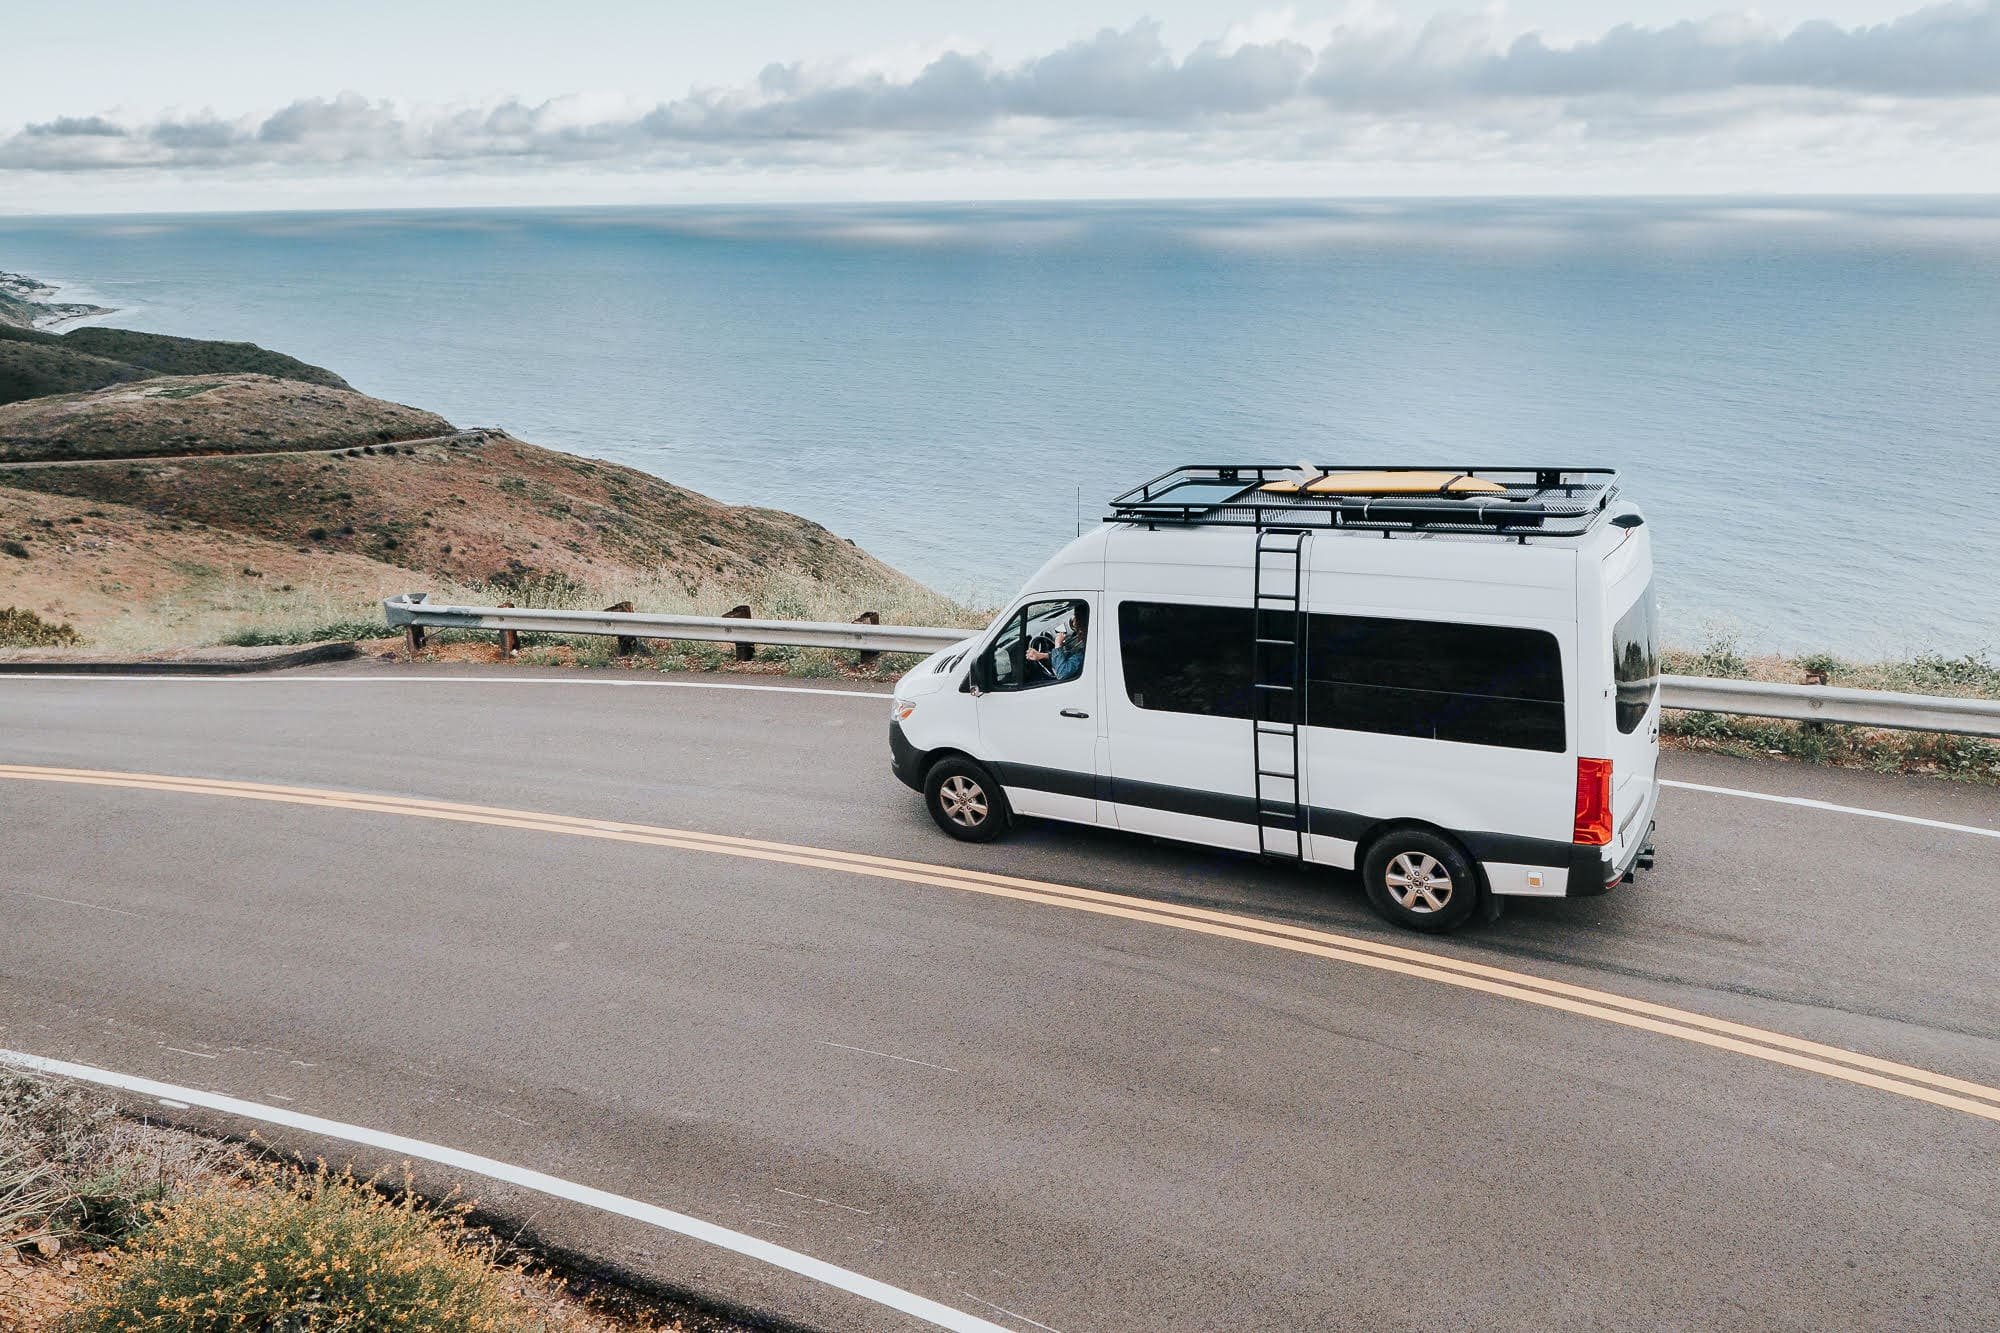 The rig, ladder side with the best roof deck. Mercedes-Benz Sprinter 2019